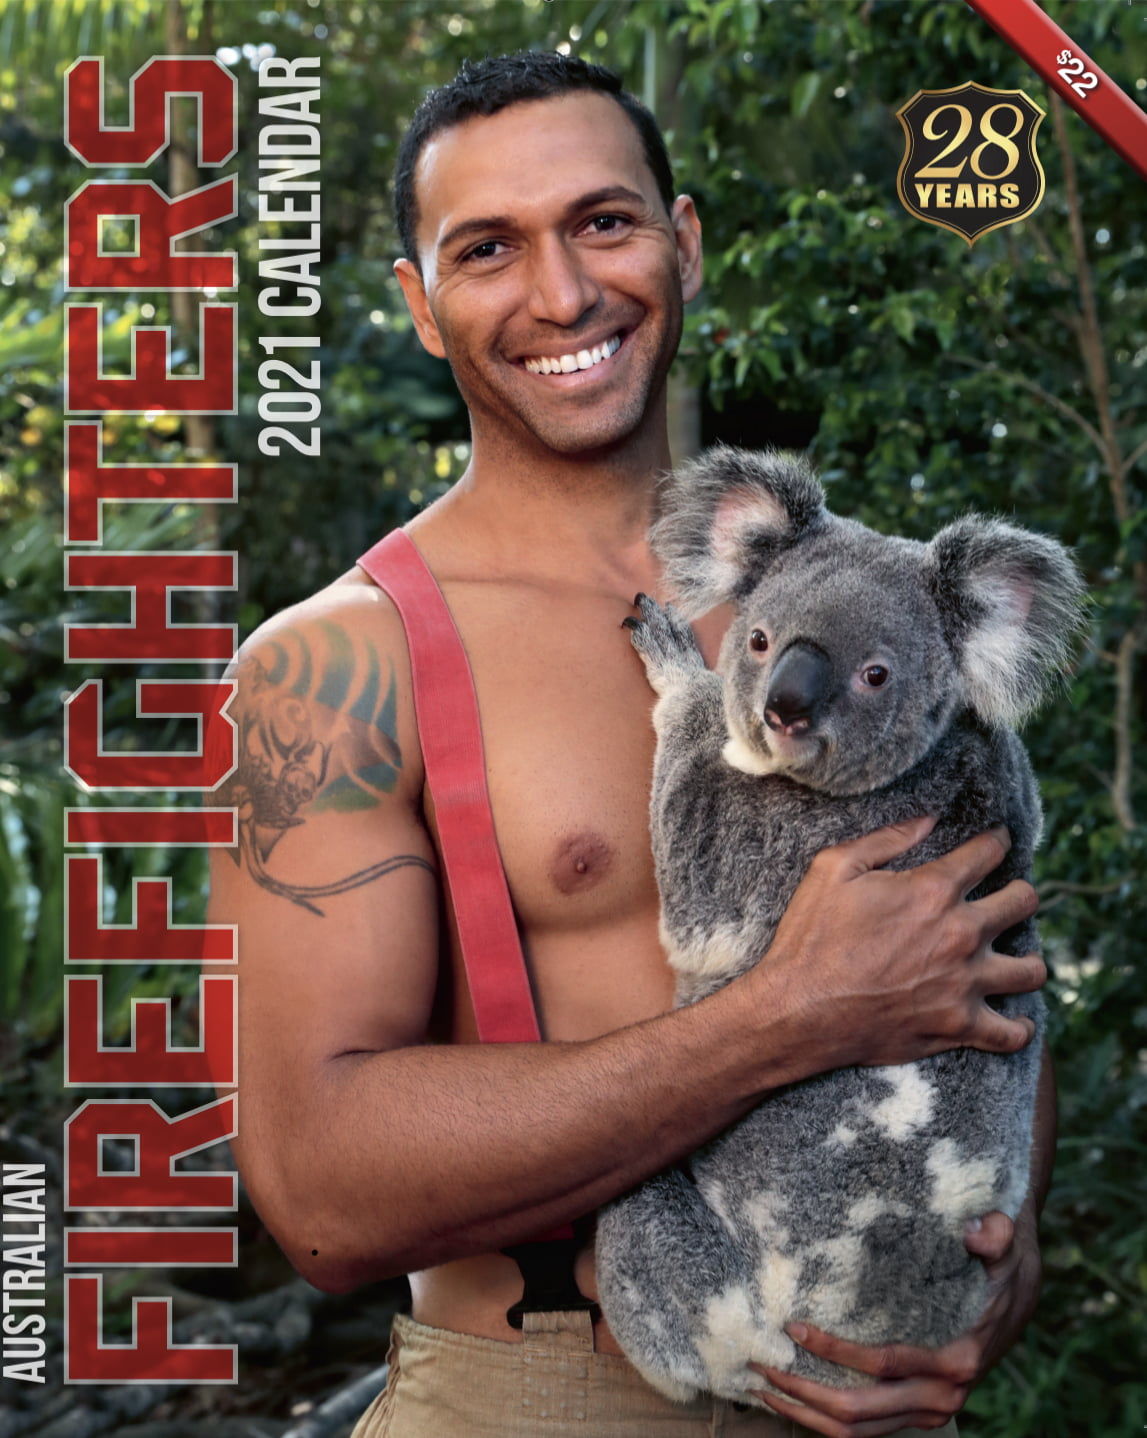 Australian Firefighters Calendar is Back for 2021